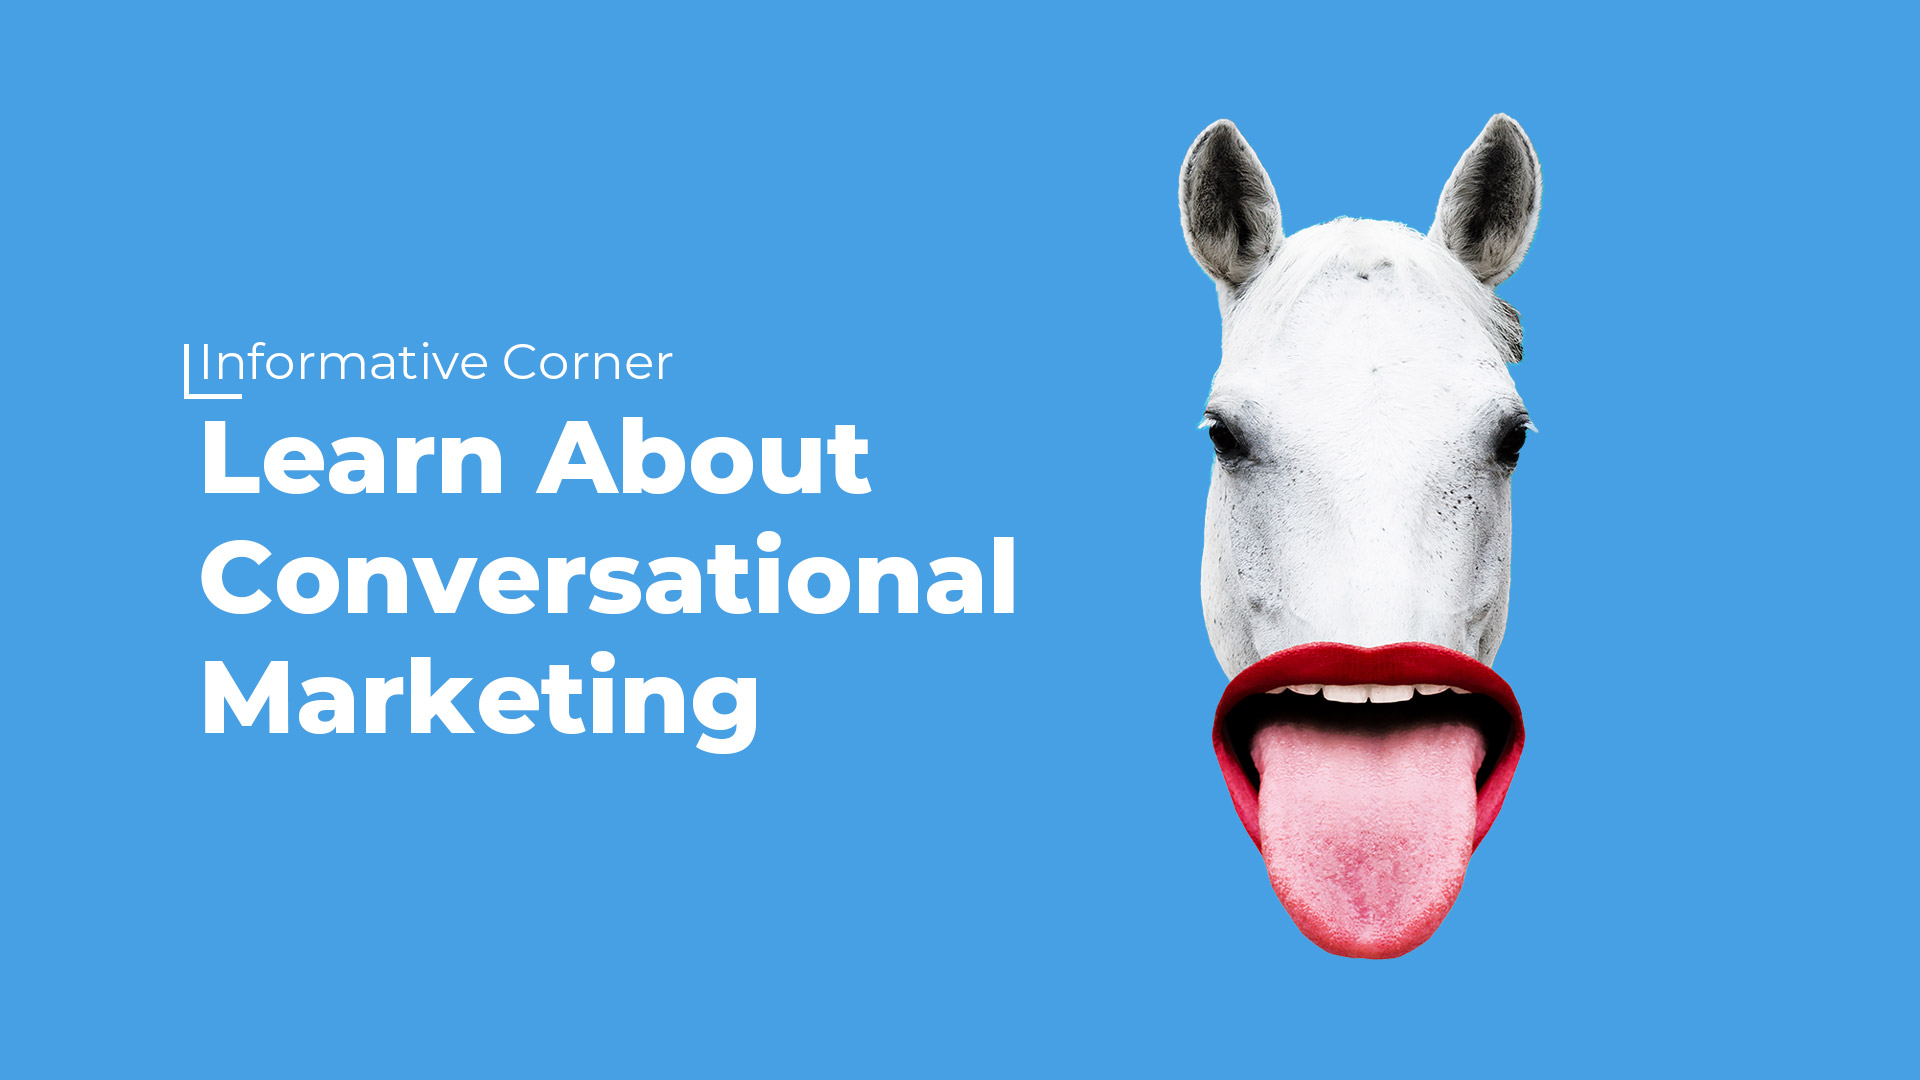 Informative Corner - Learn About Conversational Marketing